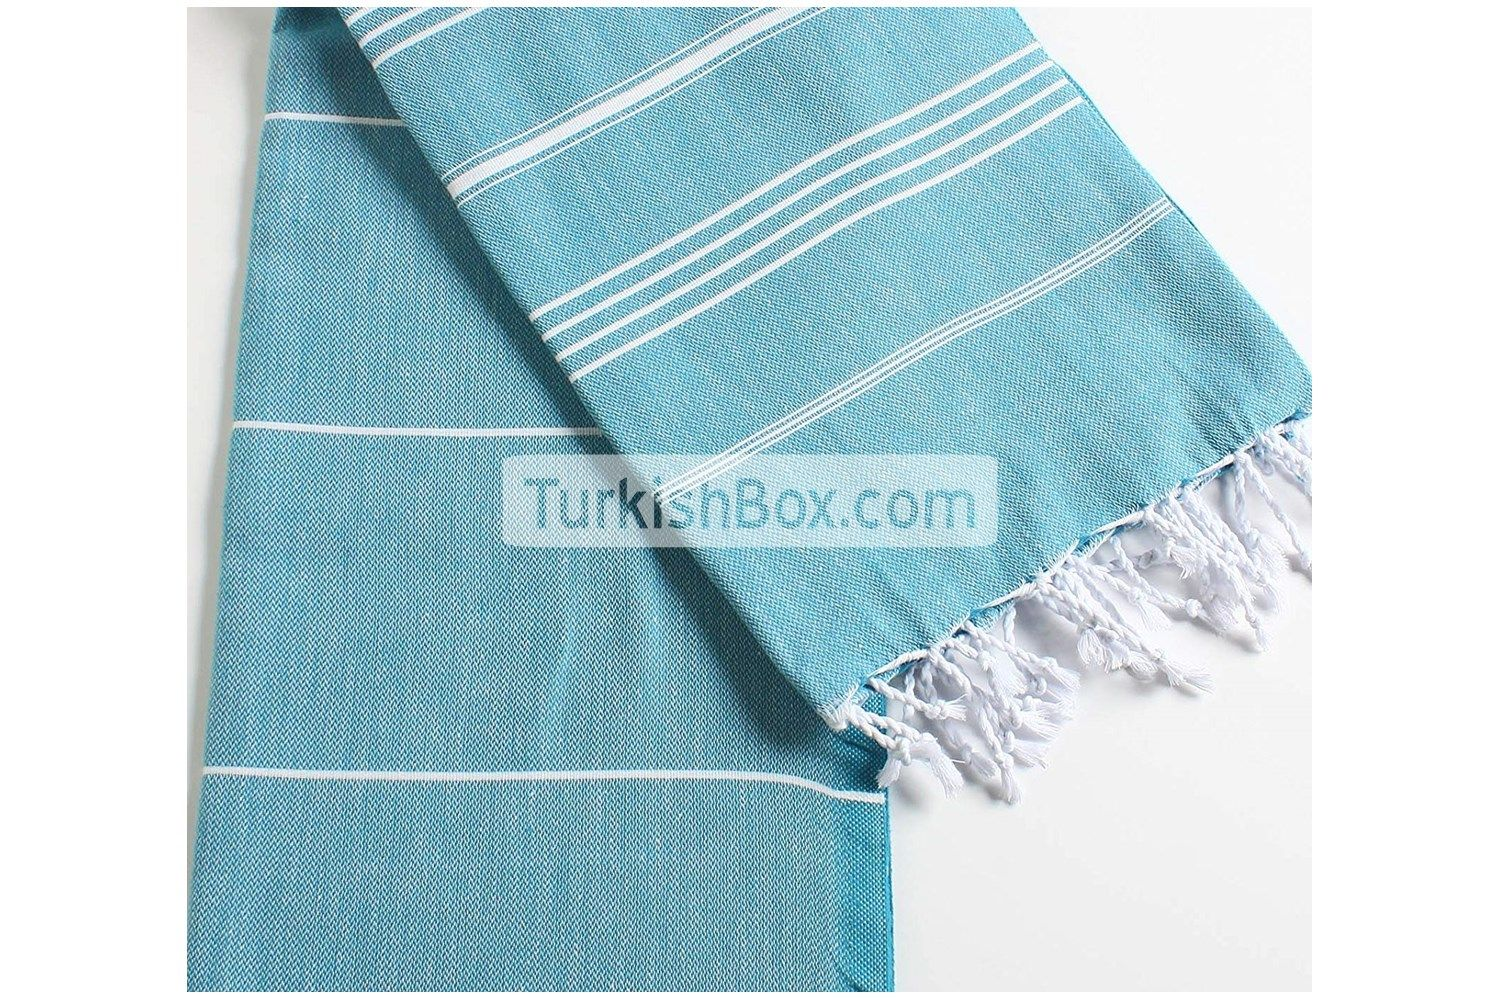 Cacala Peshtemal Turkish Towel Medium Thickness 95x175 Cm